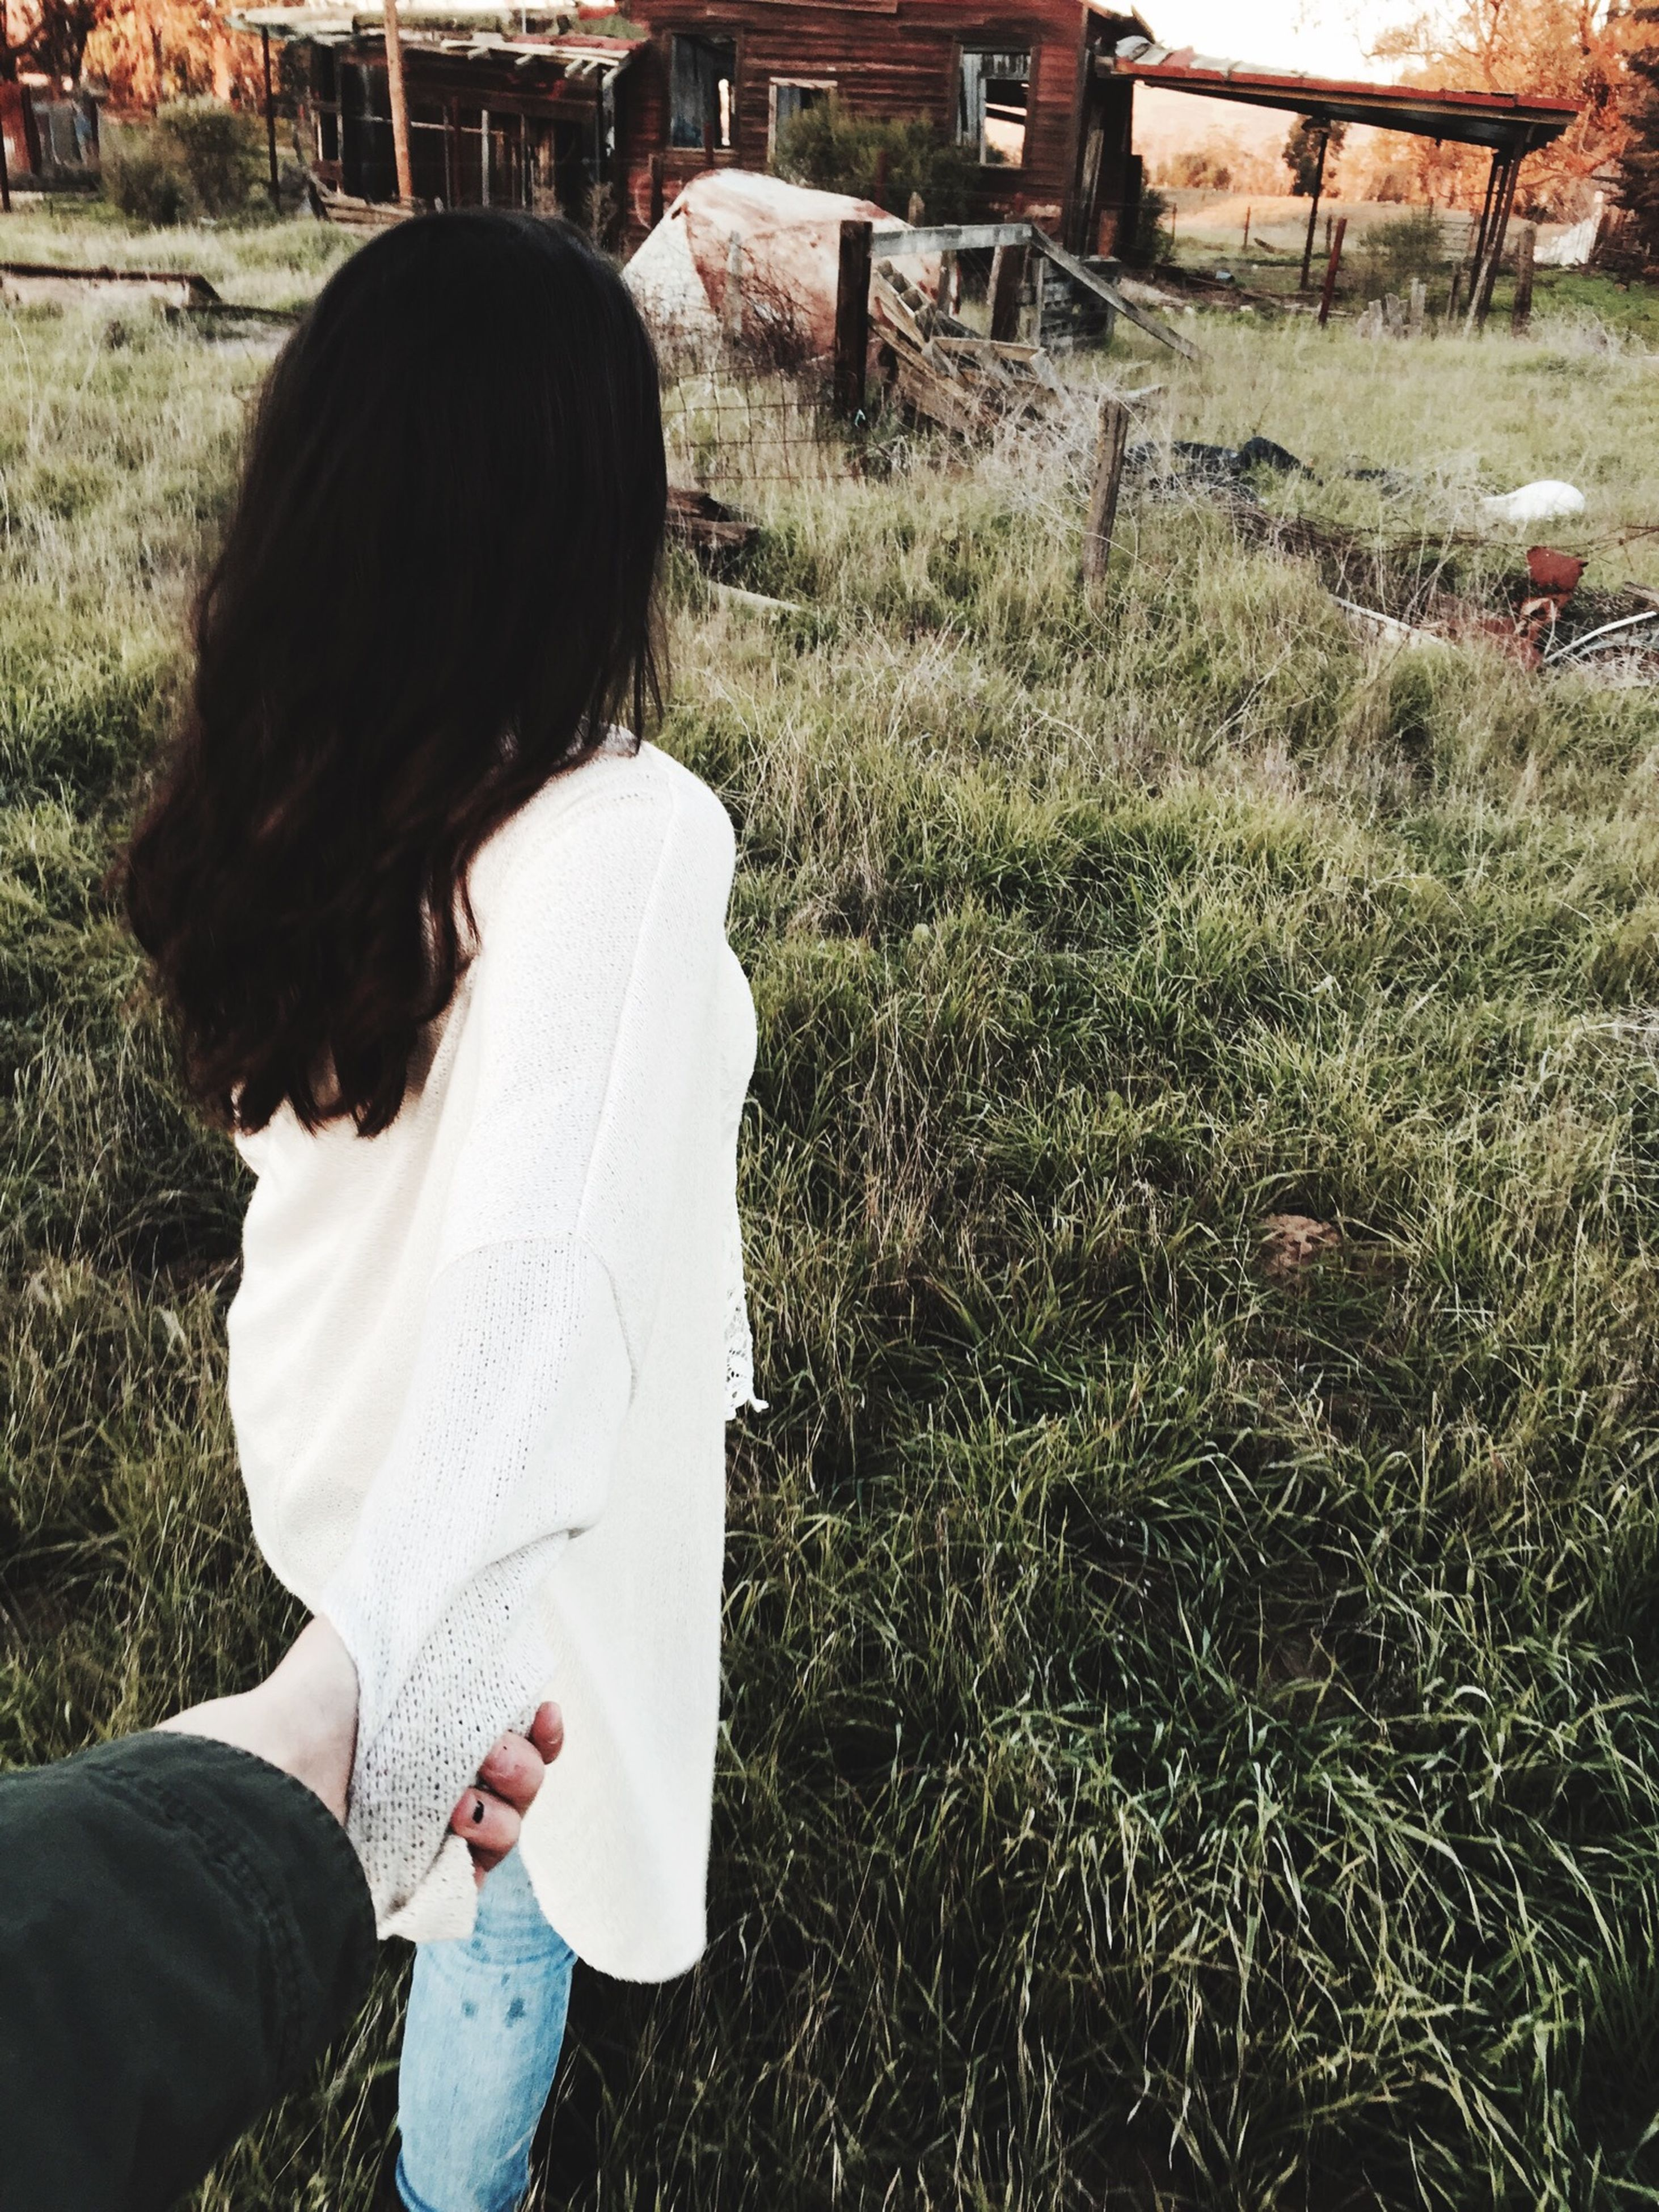 lifestyles, leisure activity, grass, field, casual clothing, rear view, girls, childhood, holding, person, standing, elementary age, day, grassy, three quarter length, focus on foreground, outdoors, waist up